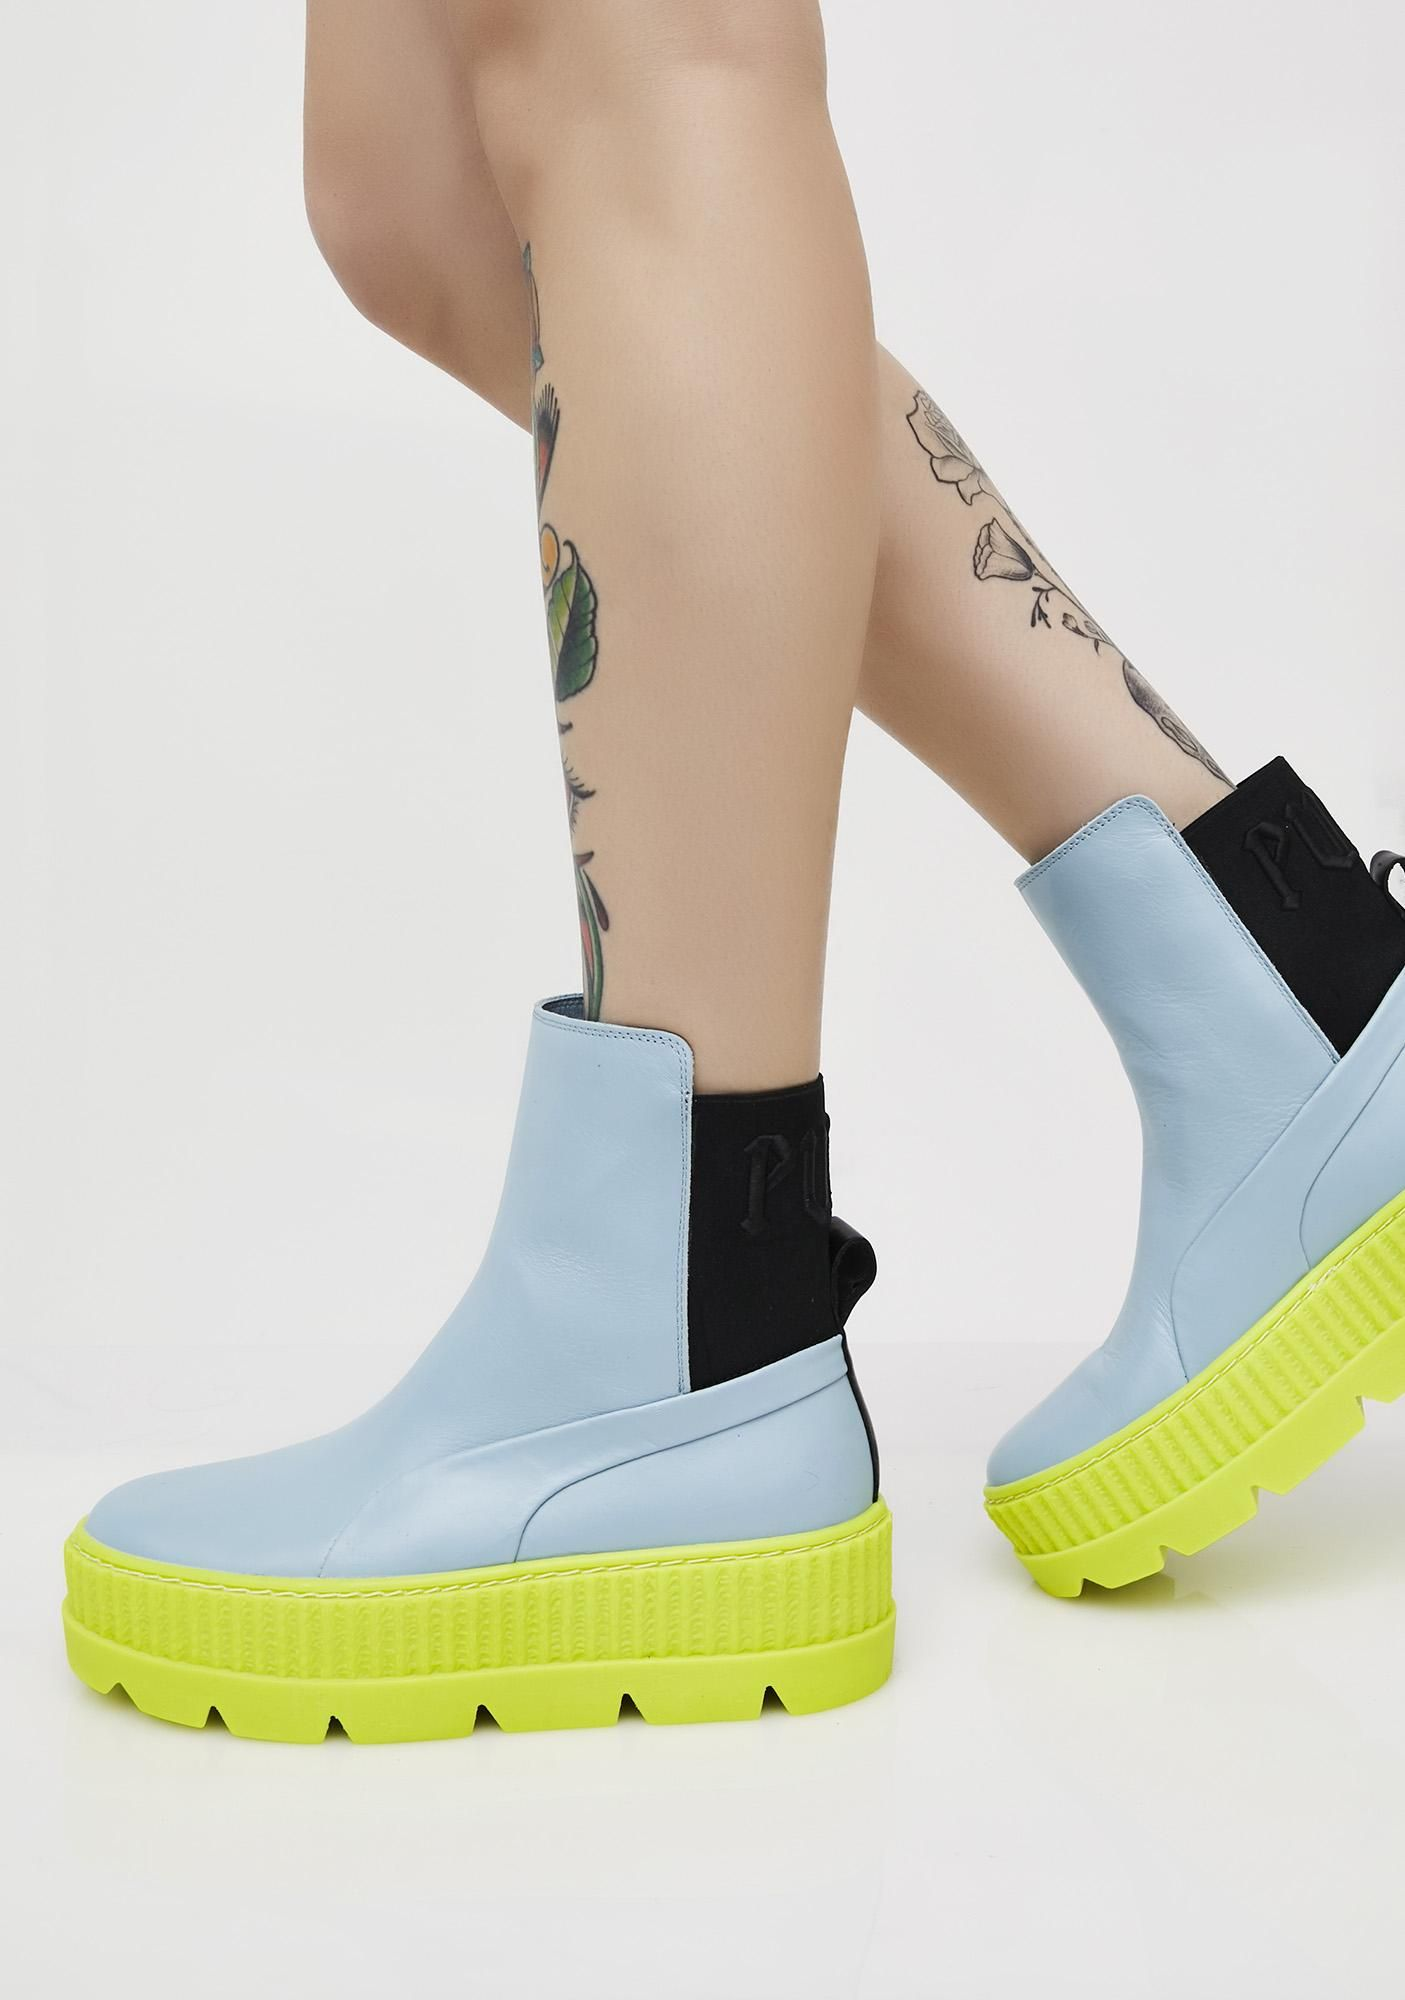 96d0e8aa8acc74 PUMA Neon FENTY PUMA By Rihanna Chelsea Sneaker Boots got ya on another  level. These black